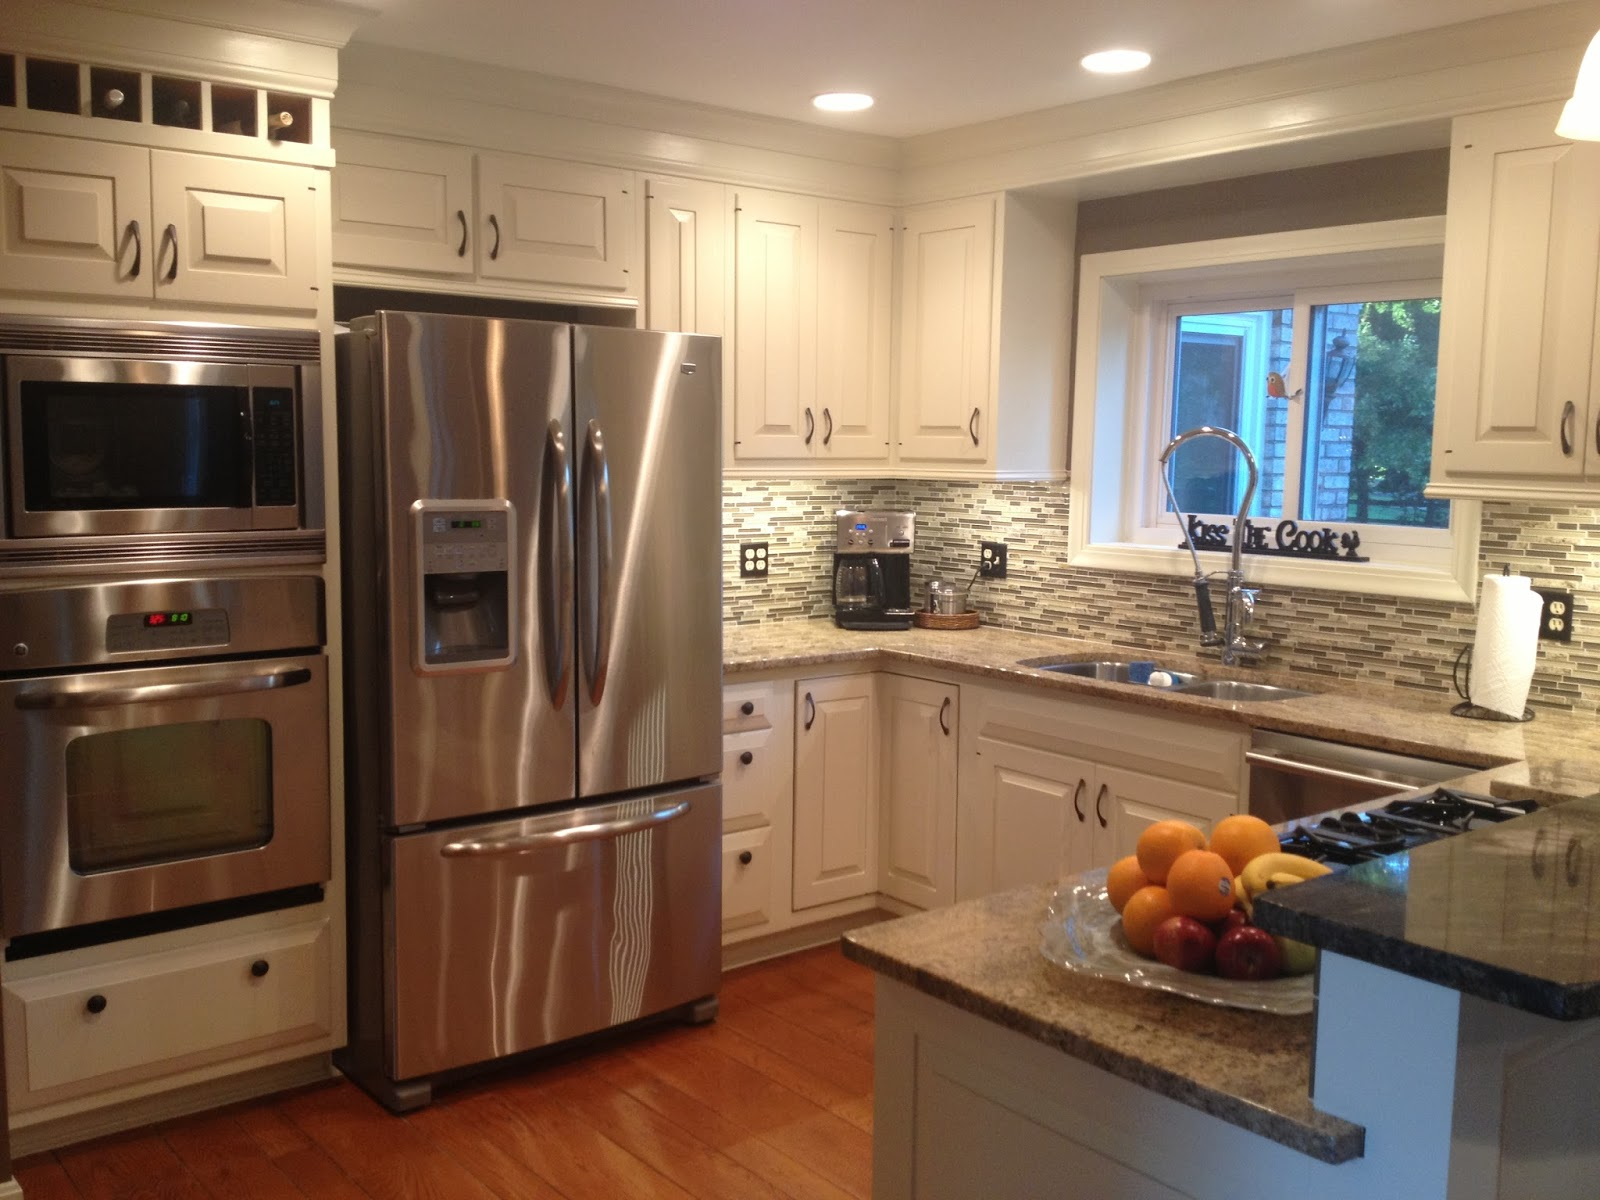 Four seasons style the new kitchen remodel on a budget - Kitchen remodeling ideas on a budget ...